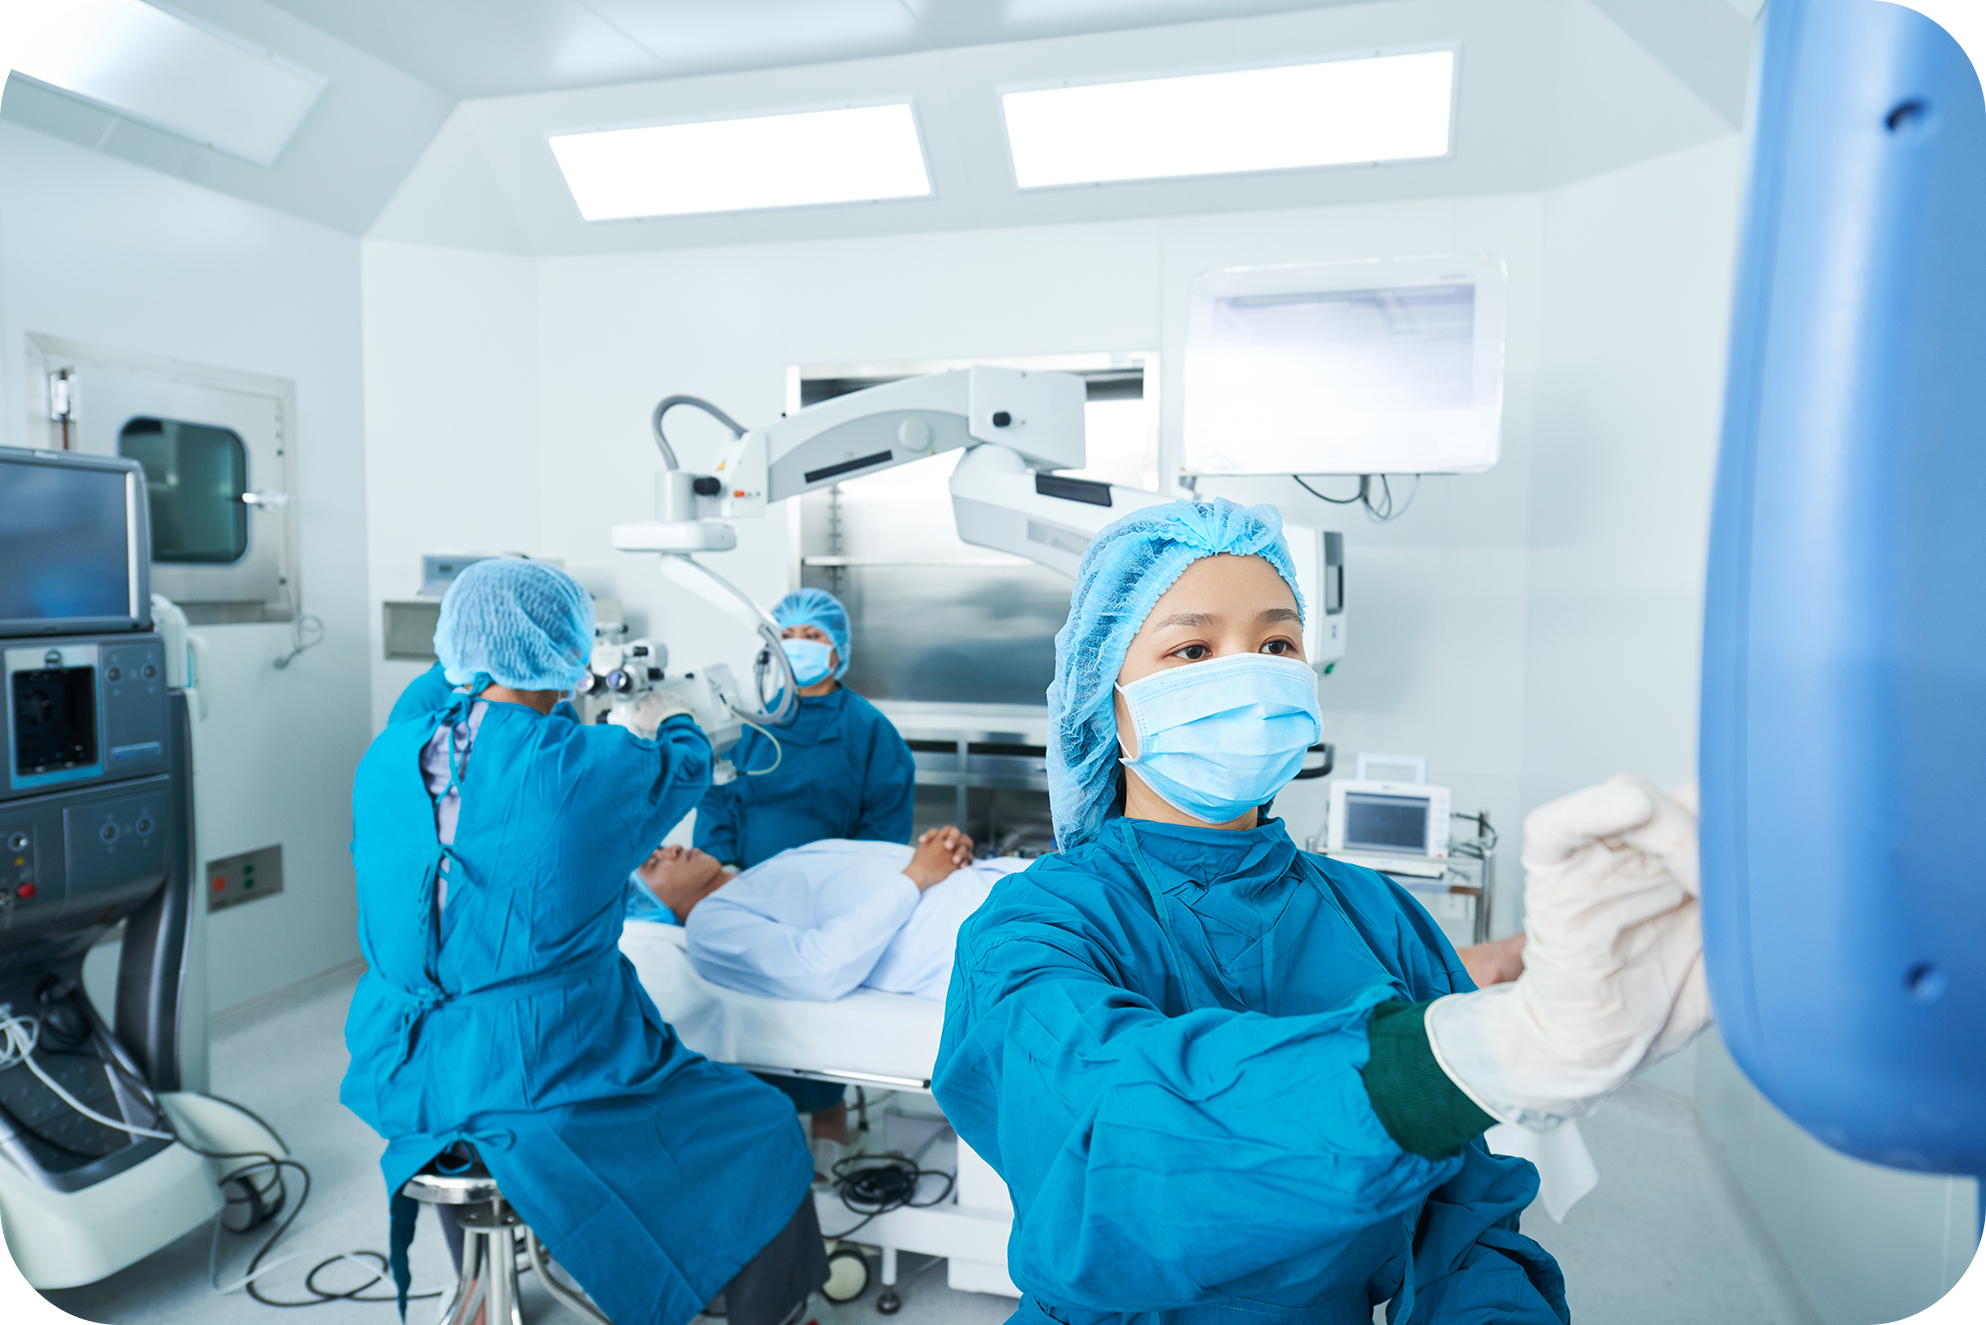 Operating team following protocol for surgery